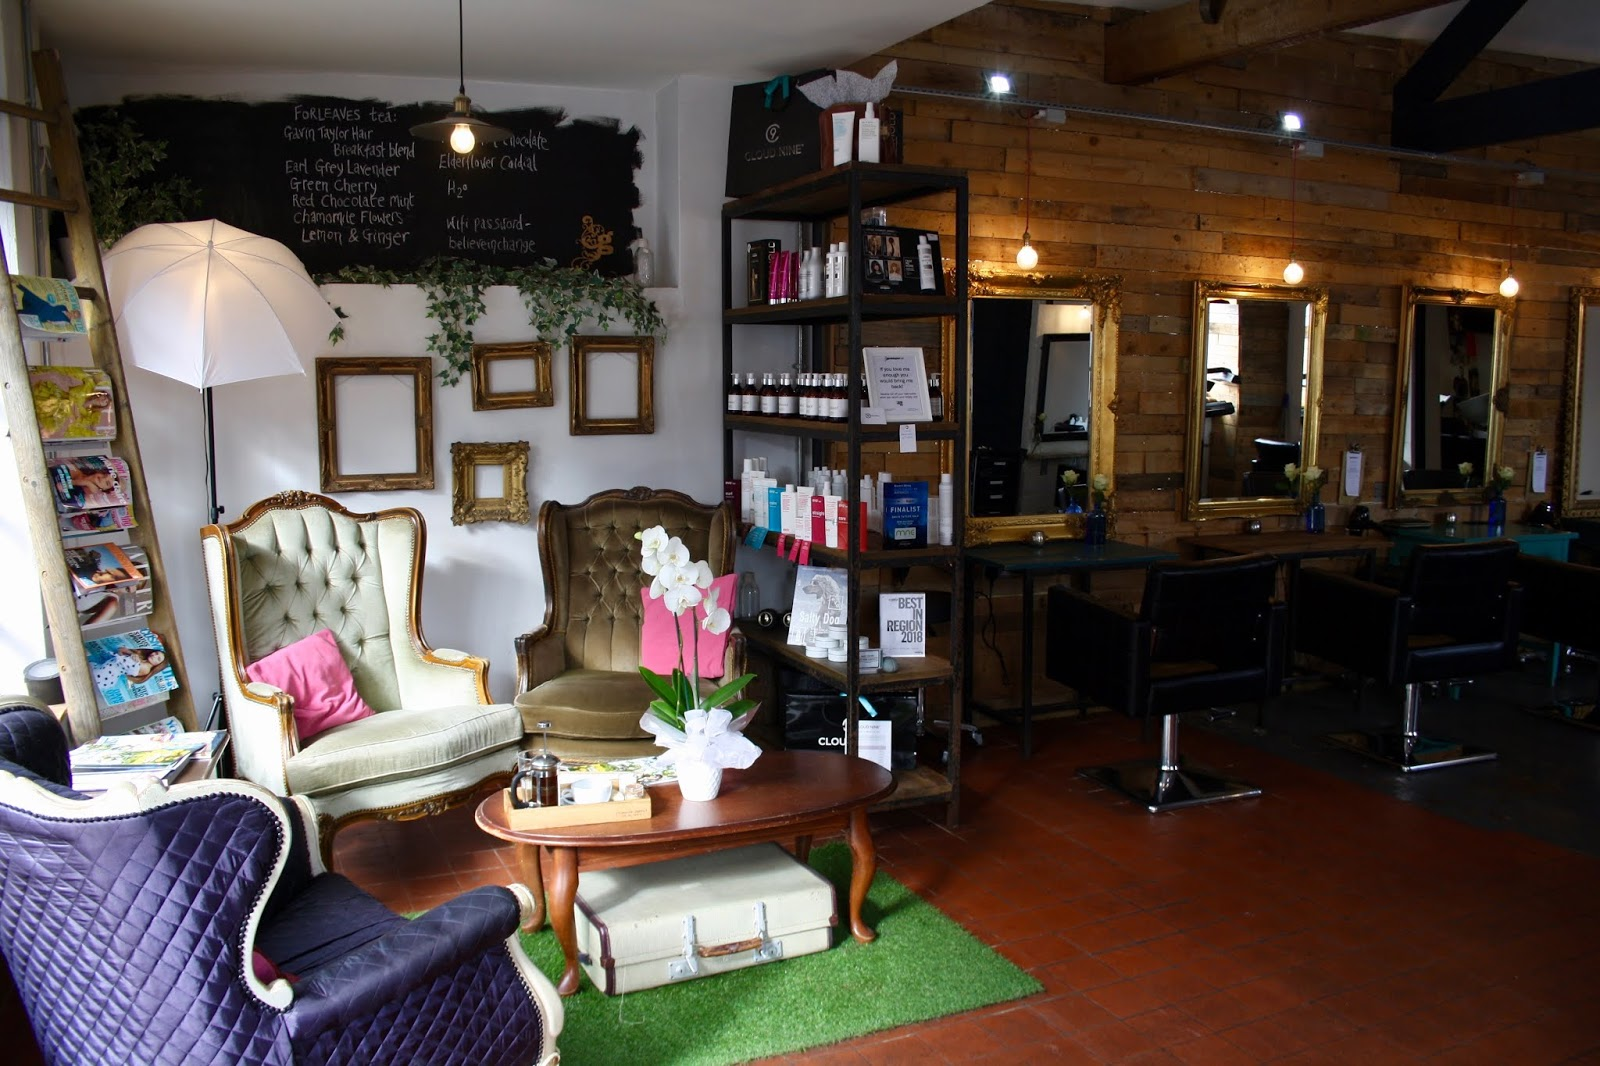 the reception area of the Gavin Taylor Hair salon, with vintage lounge chairs and a ladder used as a magazine rack